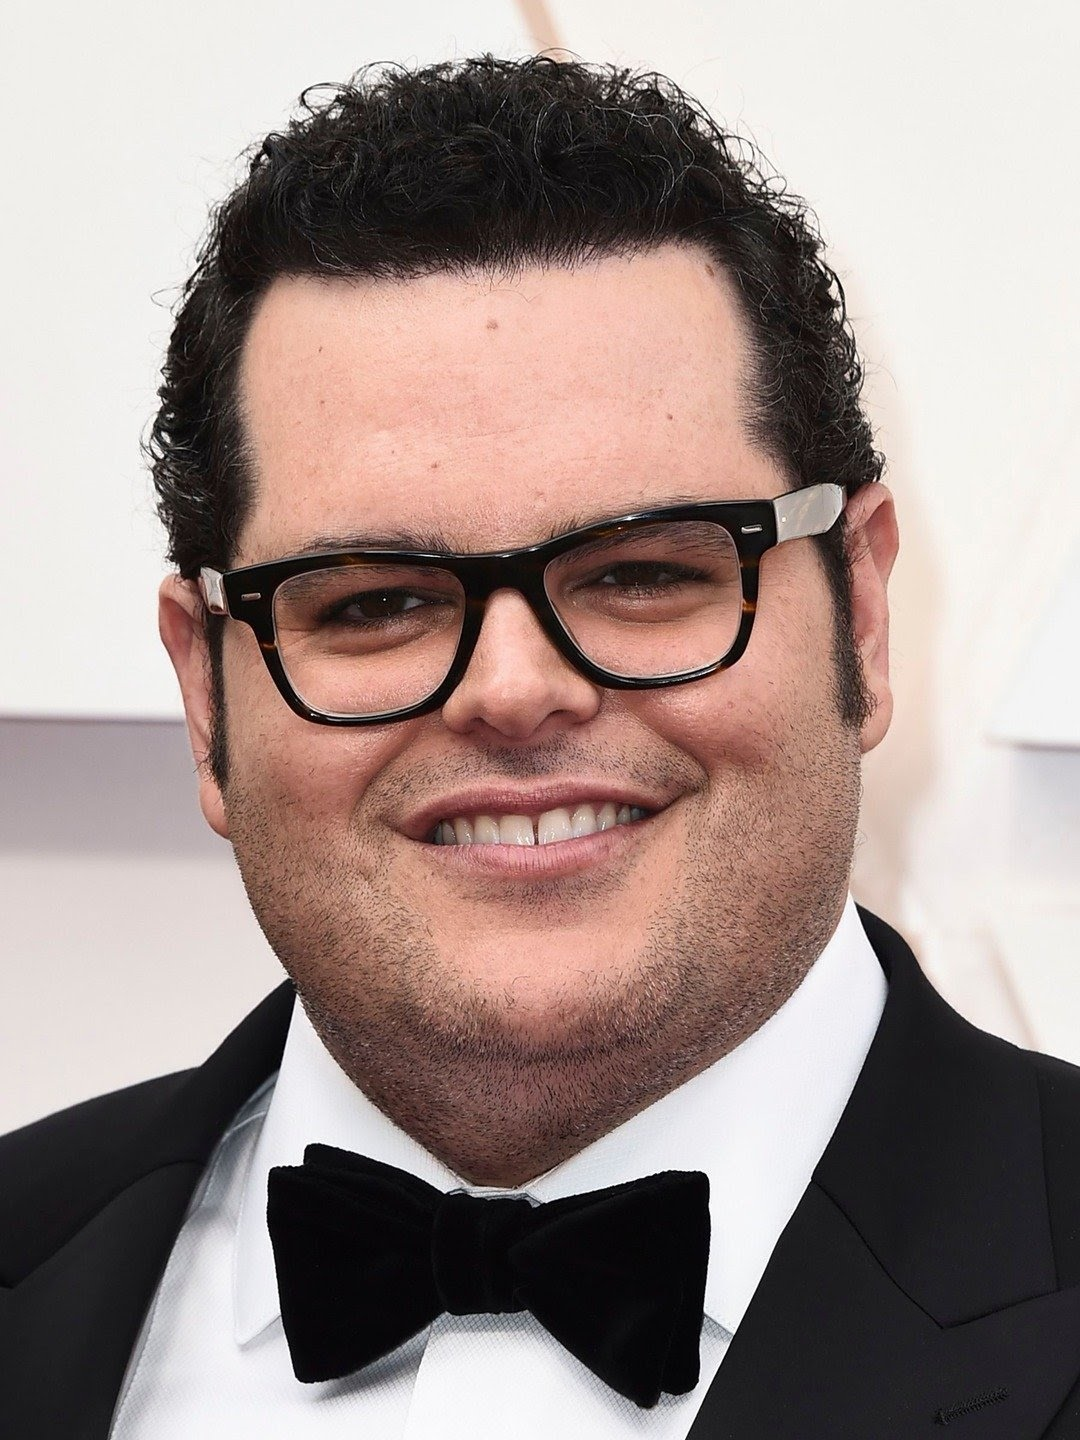 Josh Gad | Disney Wiki | FANDOM powered by Wikia